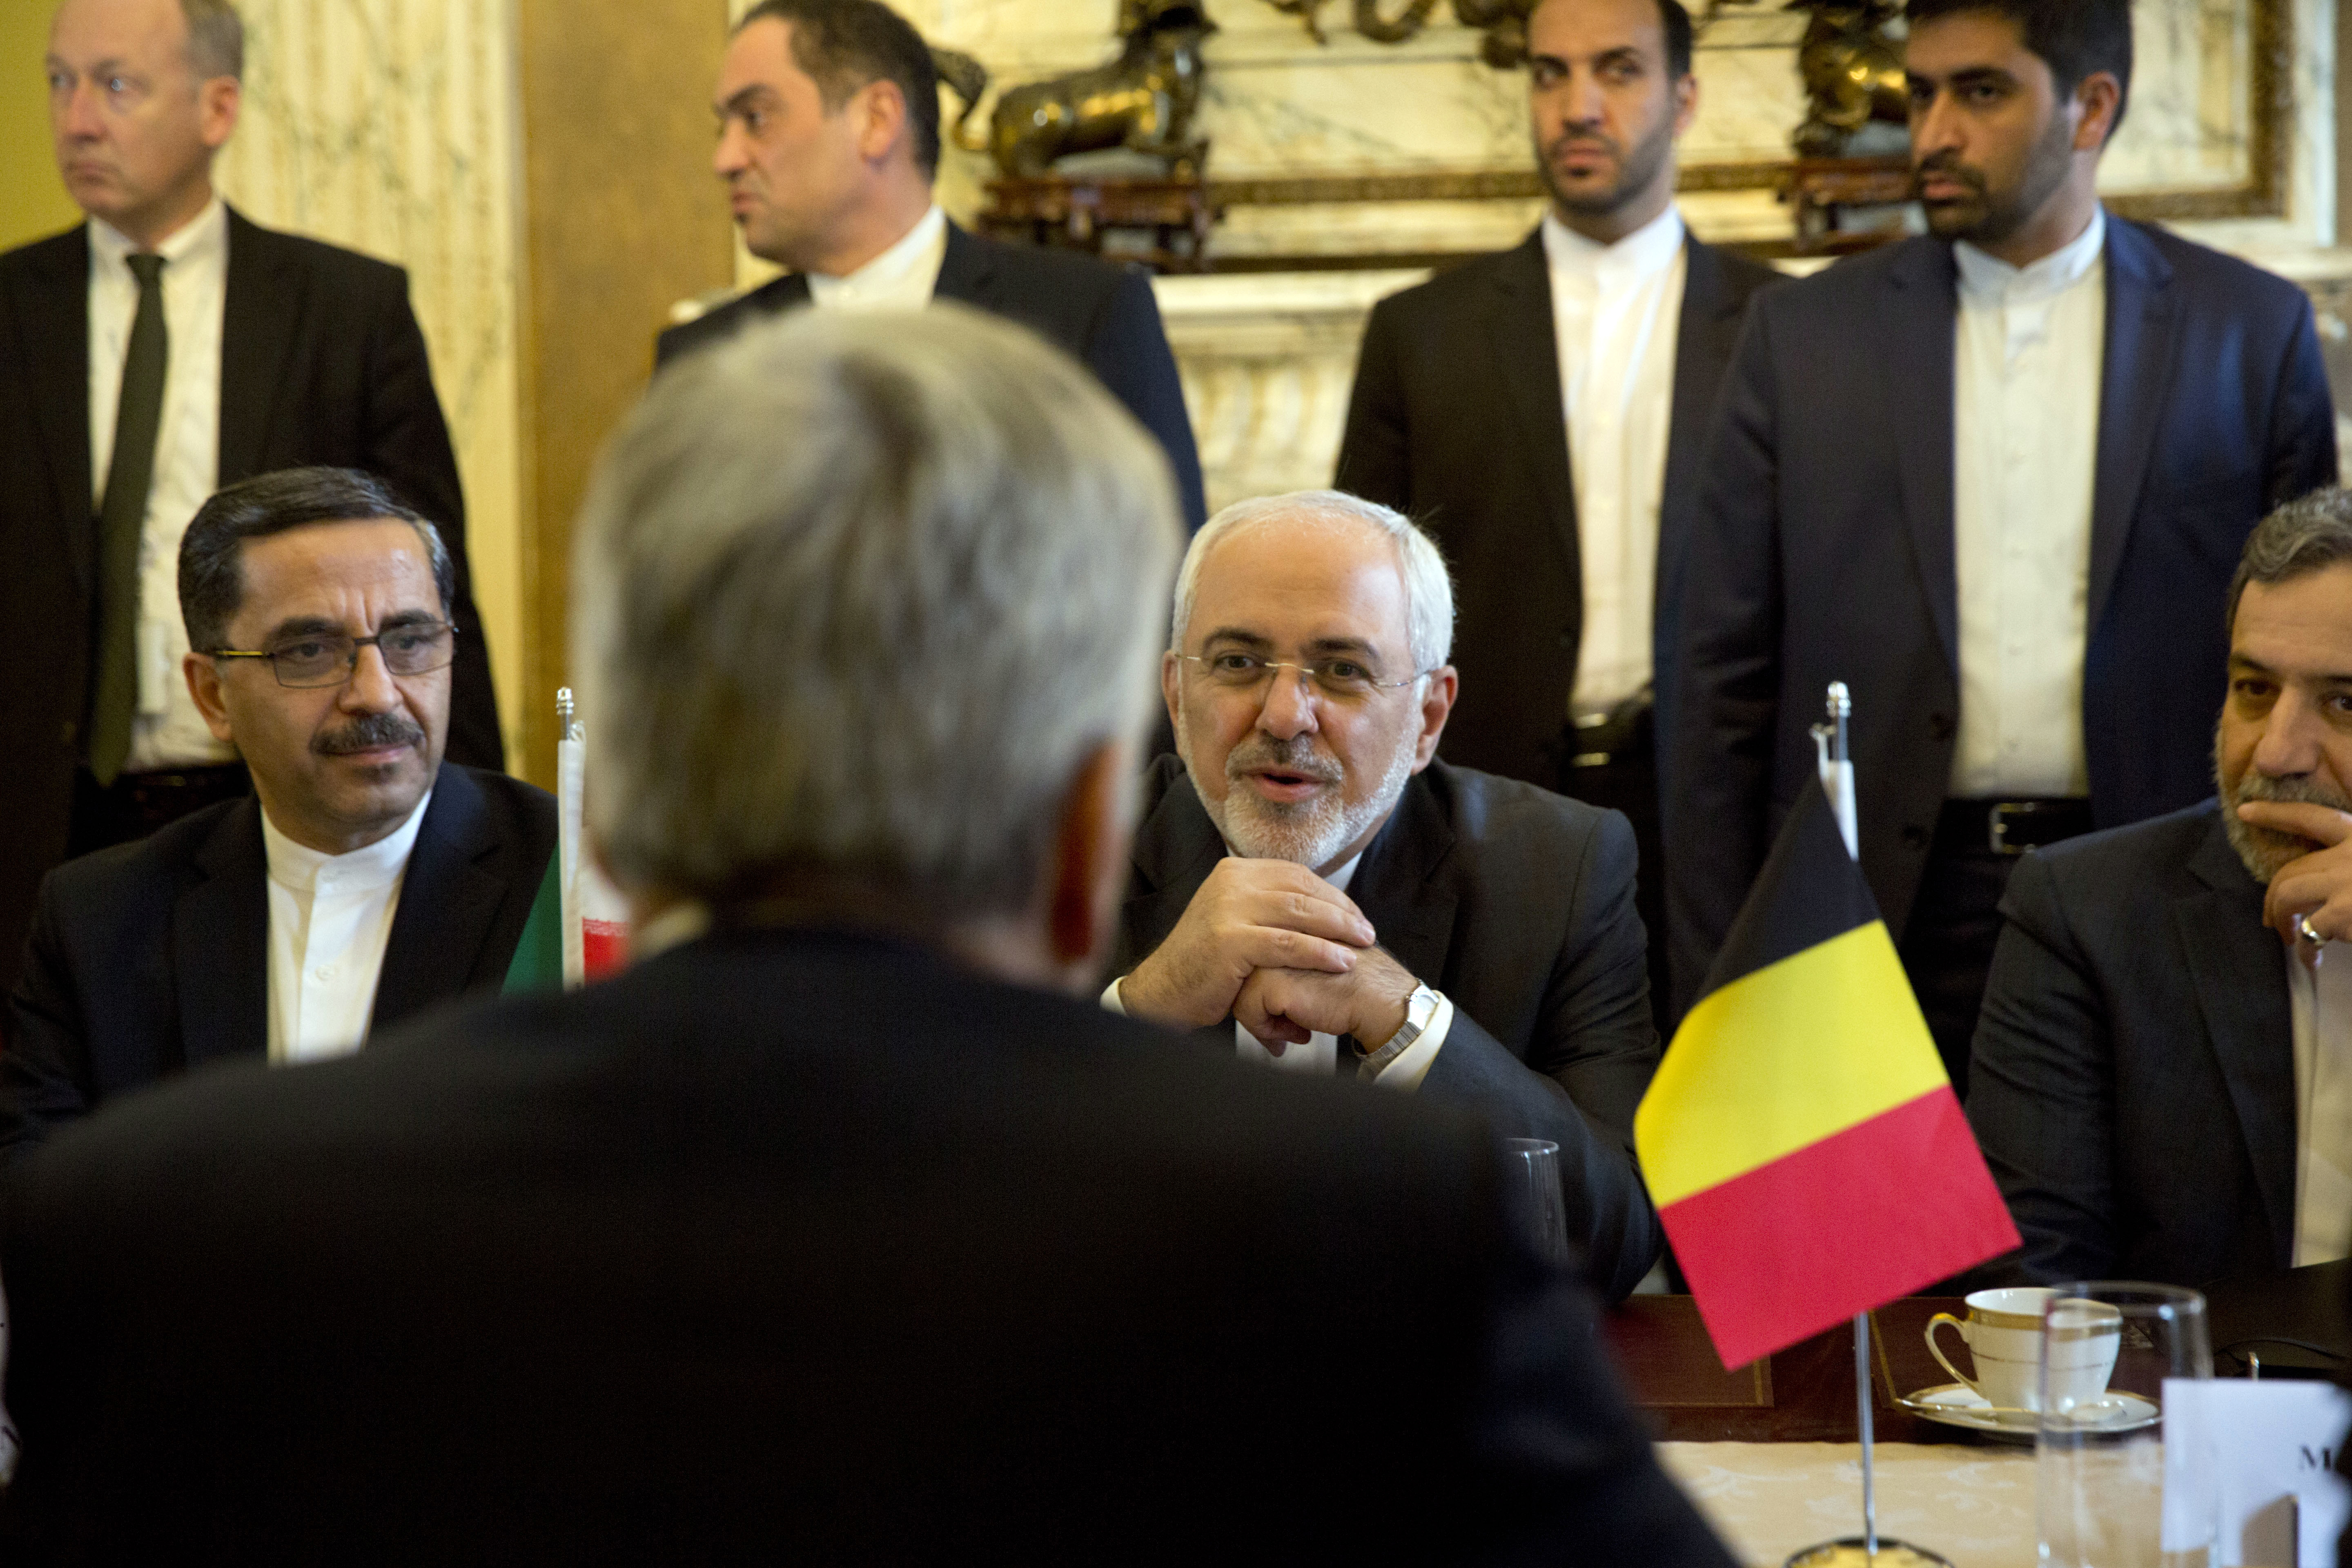 Iranian Foreign Minister Mohammad Javad Zarif, center right, speaks with Belgian Foreign Minister Didier Reynders during a meeting at the Egmont Palace in Brussels, Jan. 11, 2018. European Union foreign ministers held separate talks with their Irania...